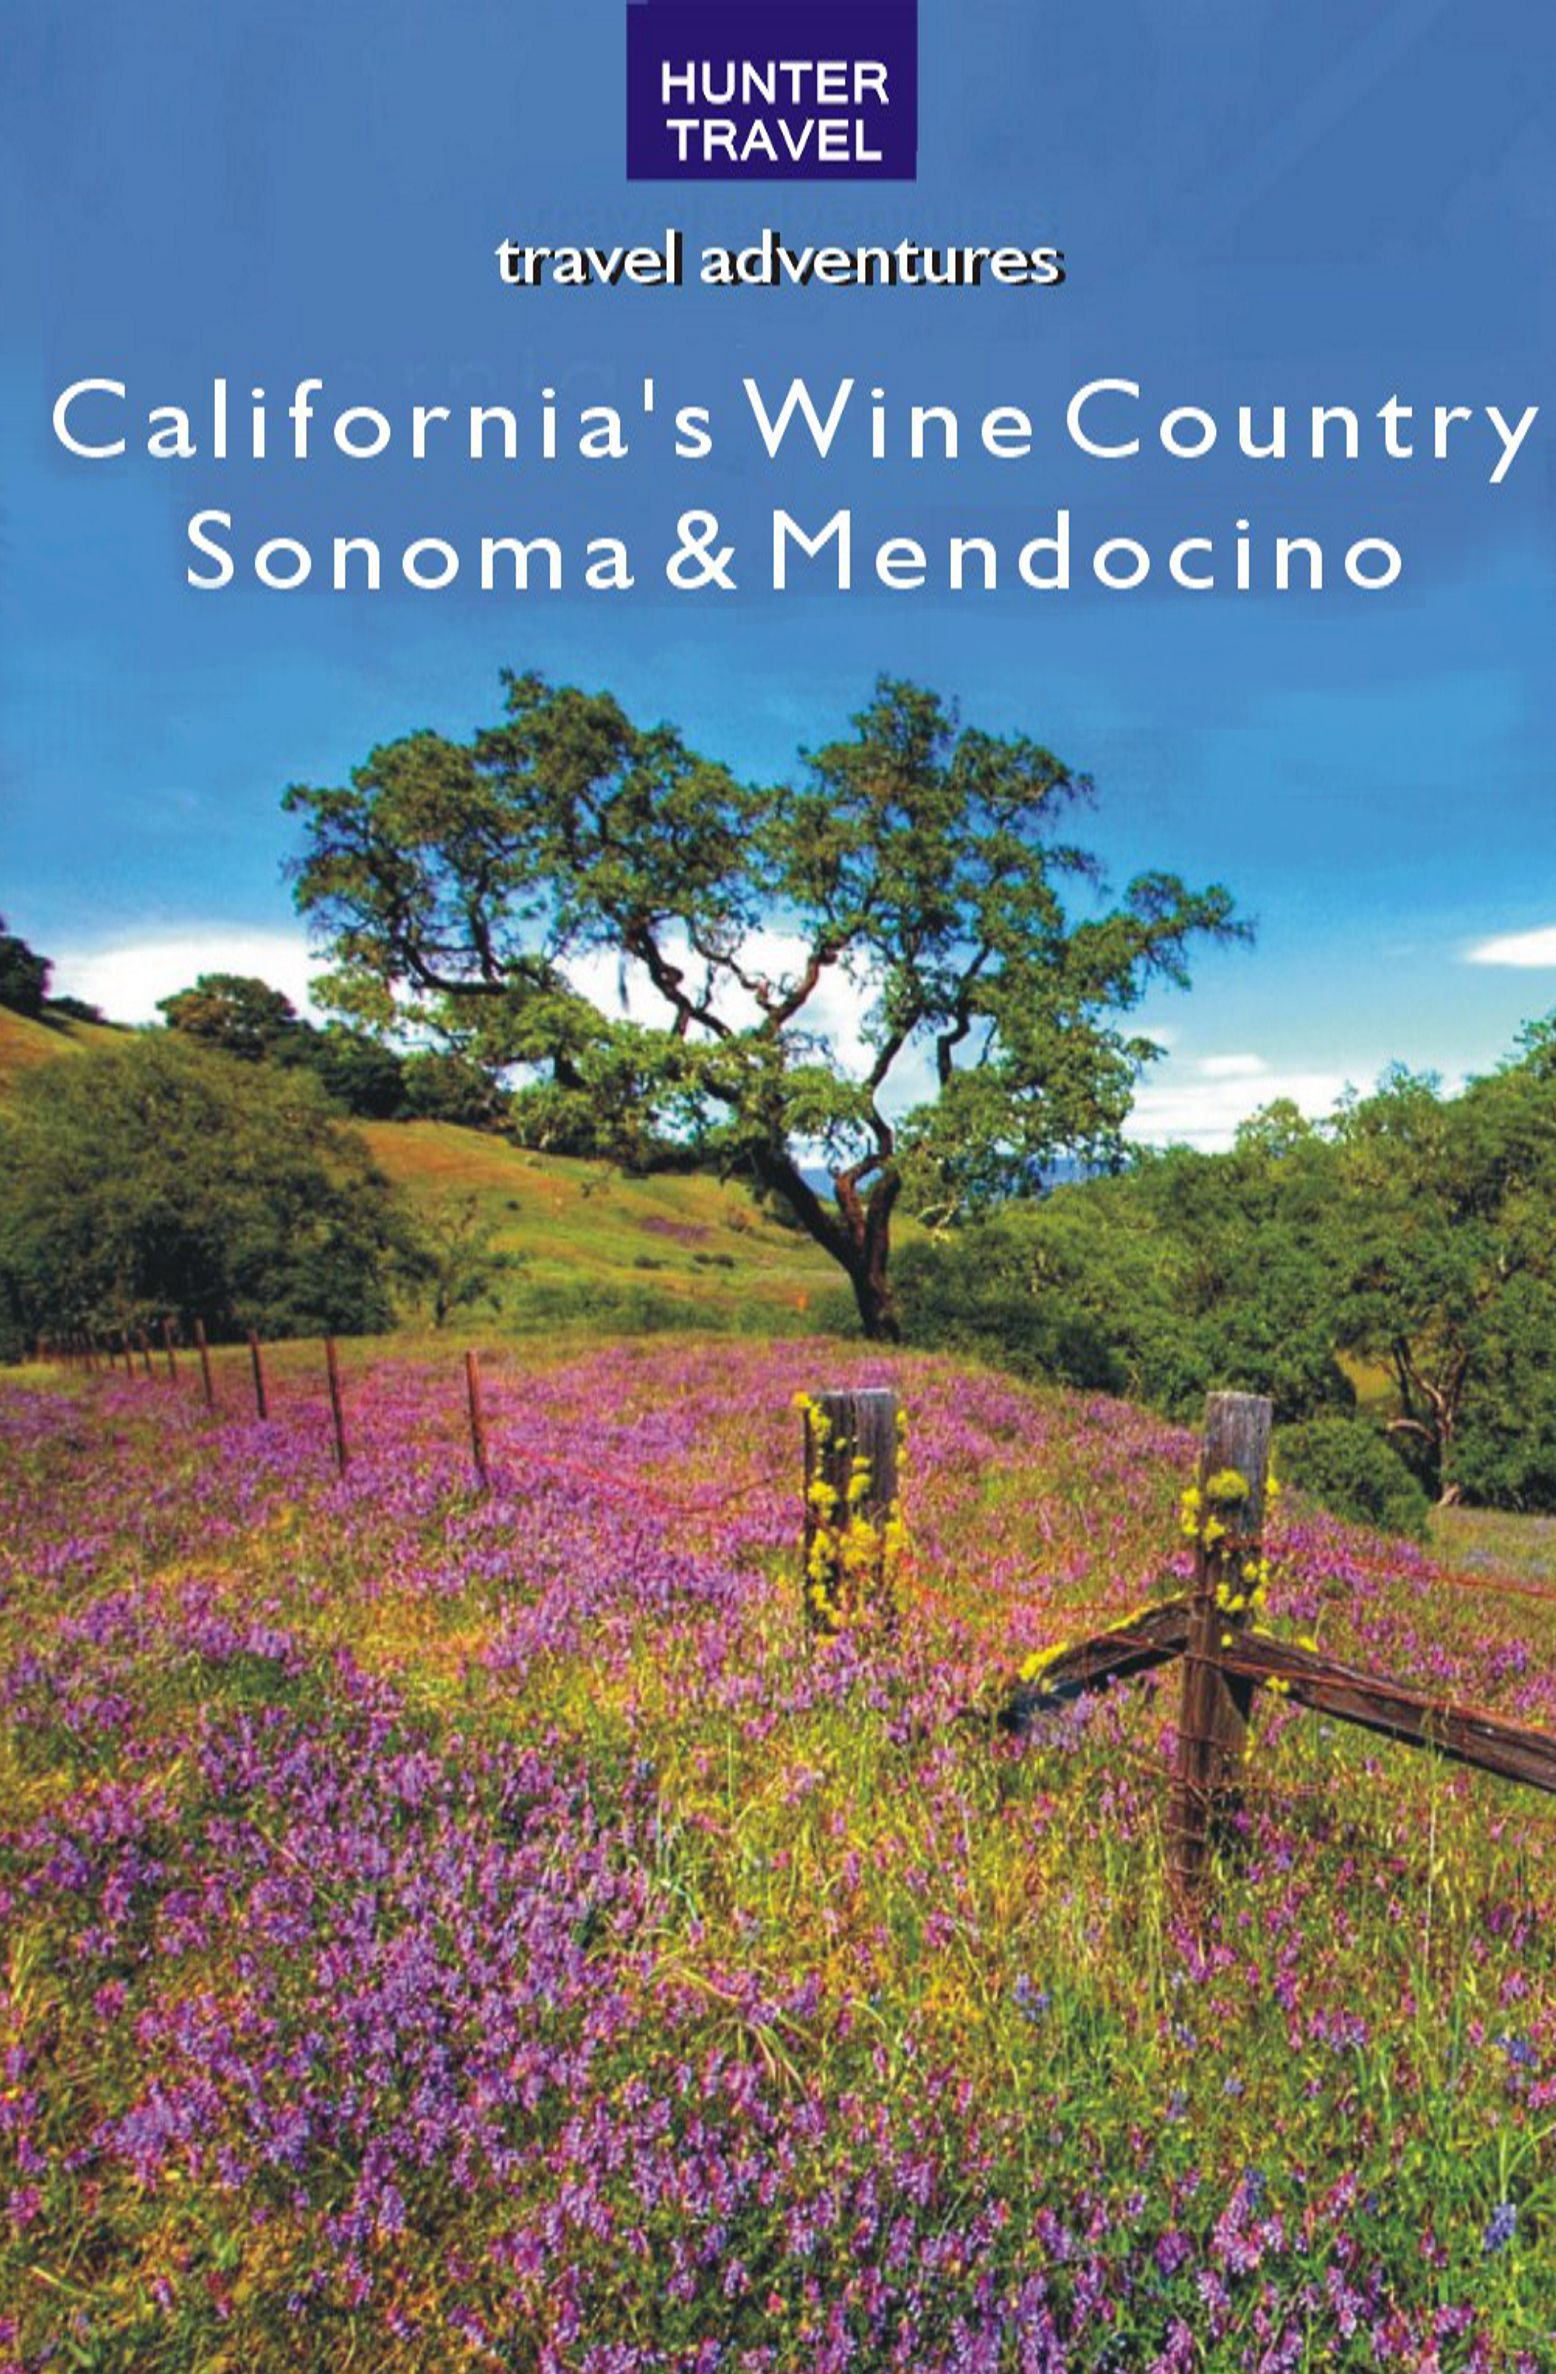 California's Wine Country - Sonoma & Mendocino